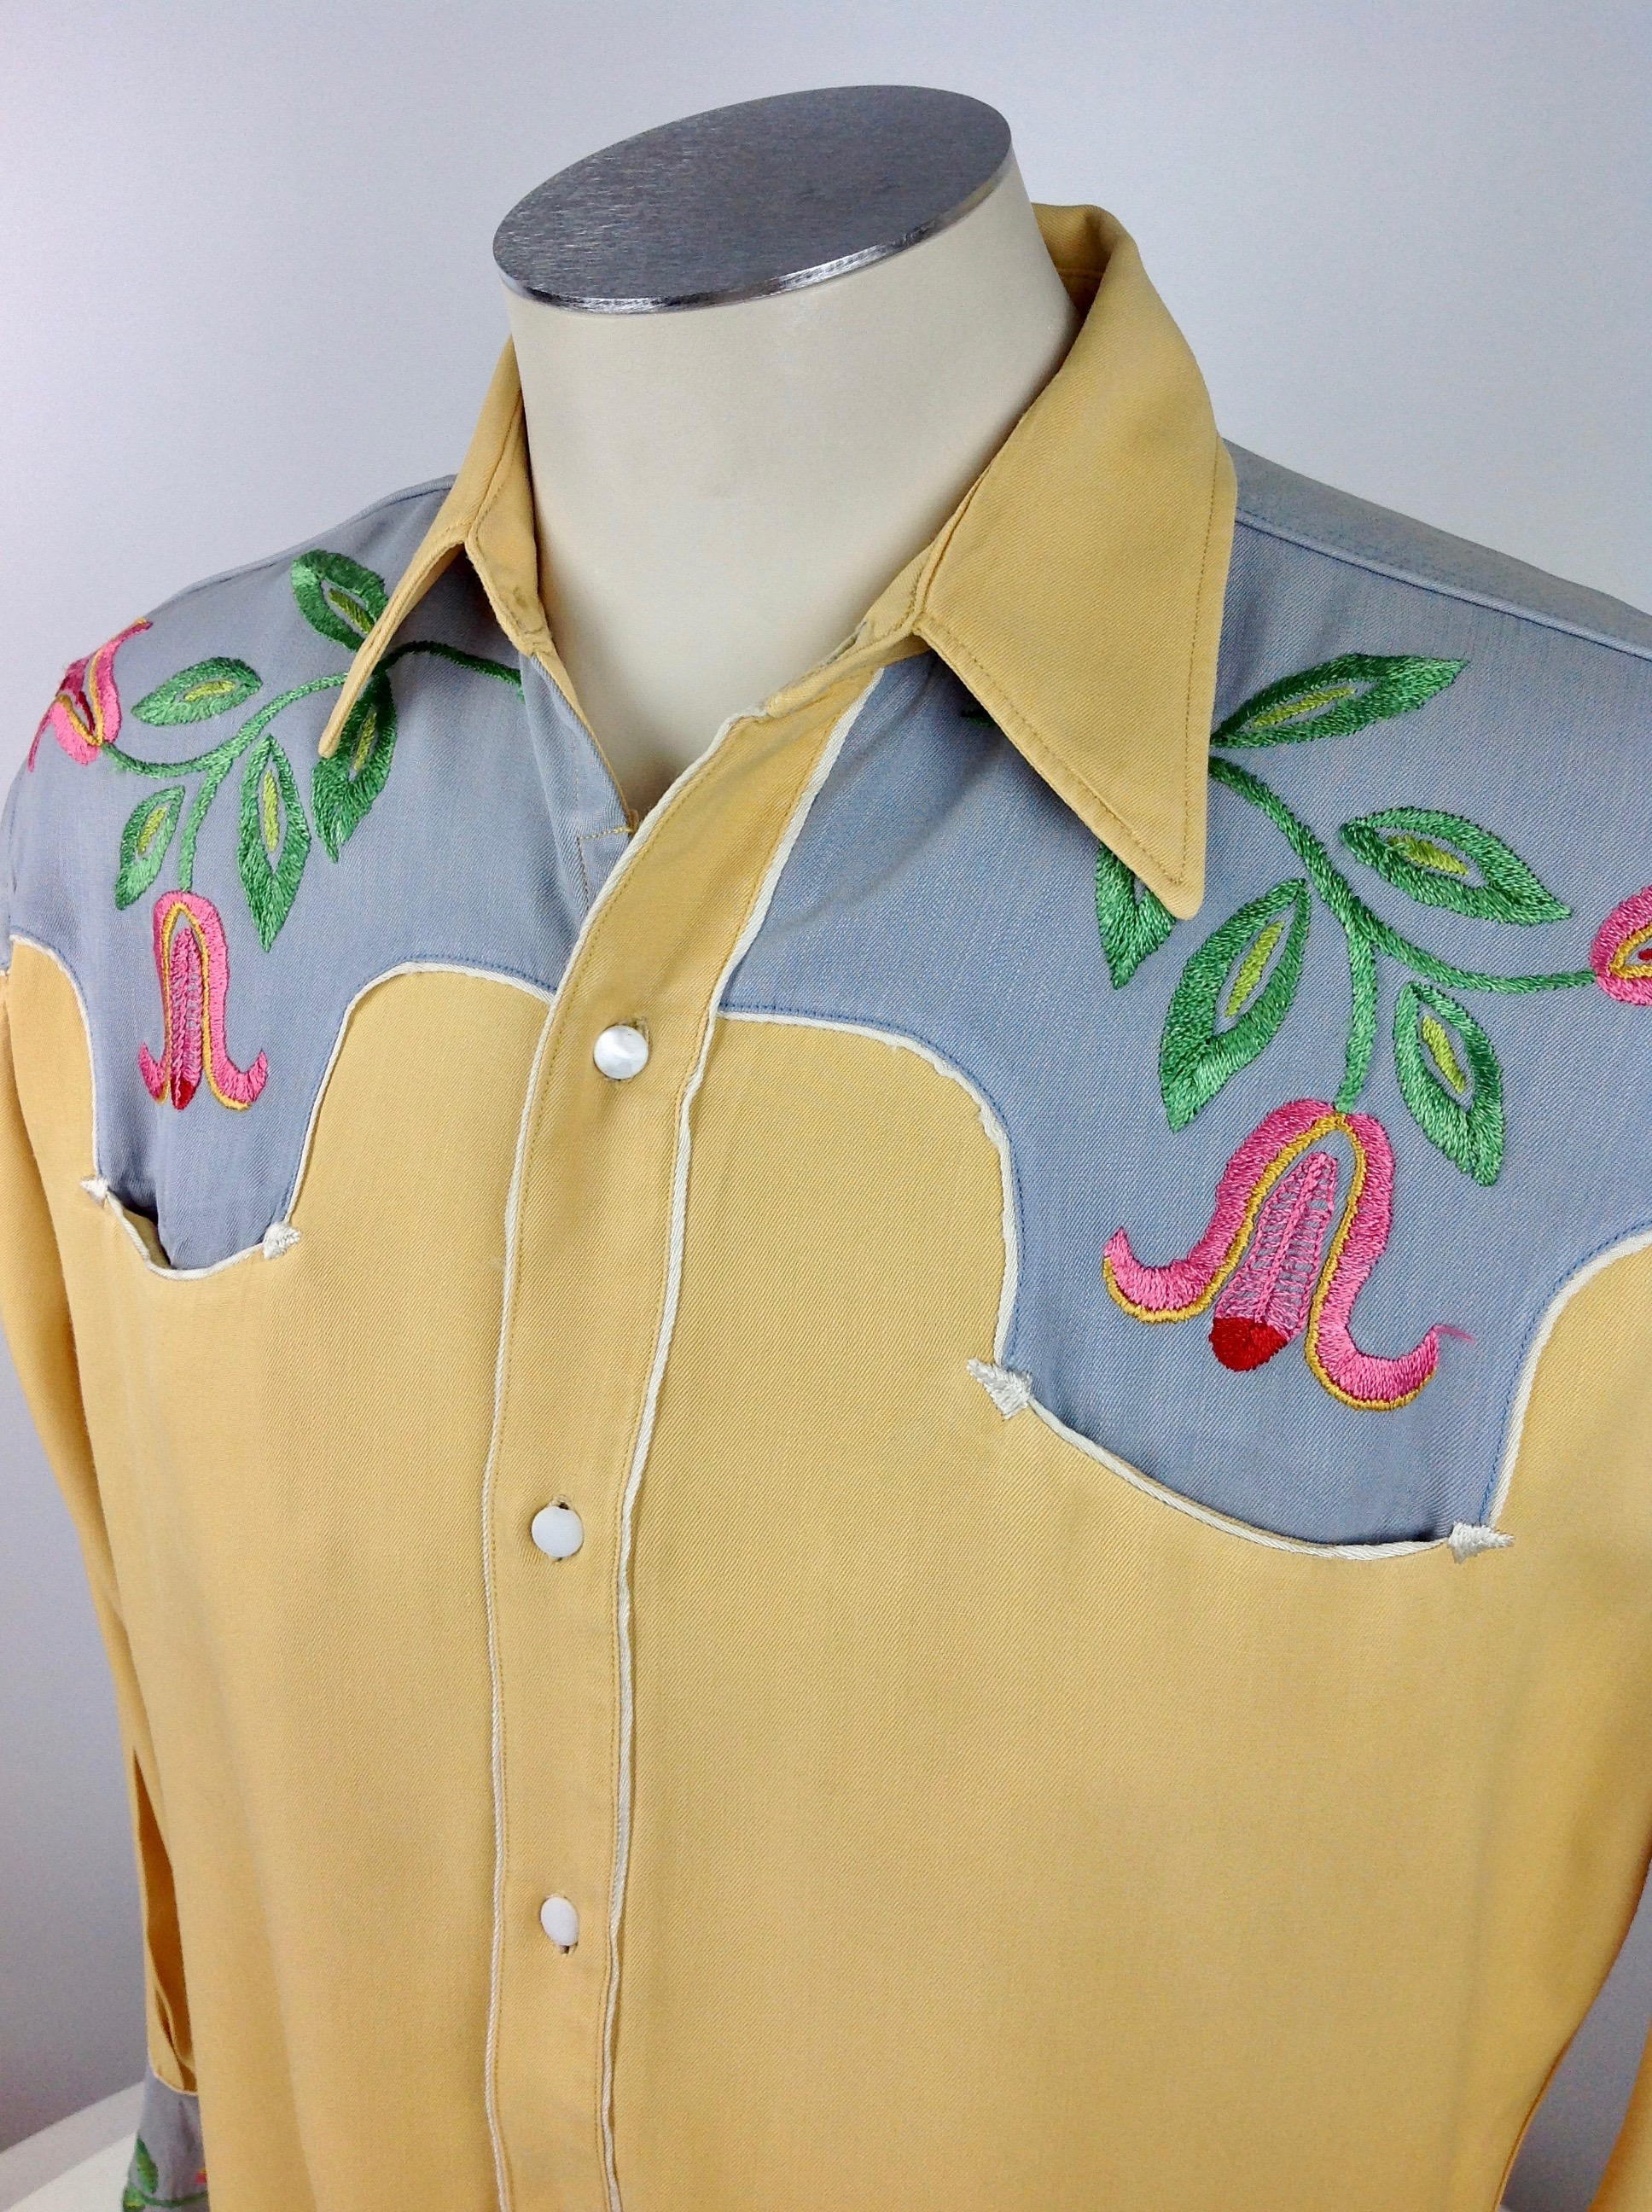 New 1930s Mens Fashion Ties 1930s 40s Western Cowboy Shirt - Two-Tone Chain Stitch Embroidery Mother Of Pearl Buttons Mens Large $22.95 AT vintagedancer.com